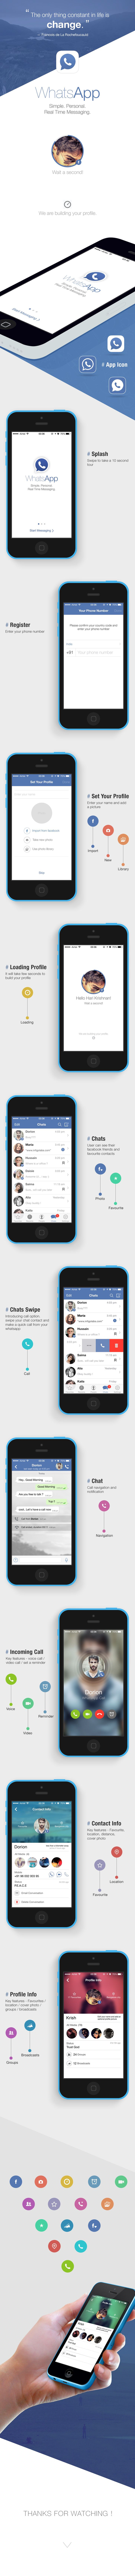 #WhatsApp and #Facebook hookup Design concept